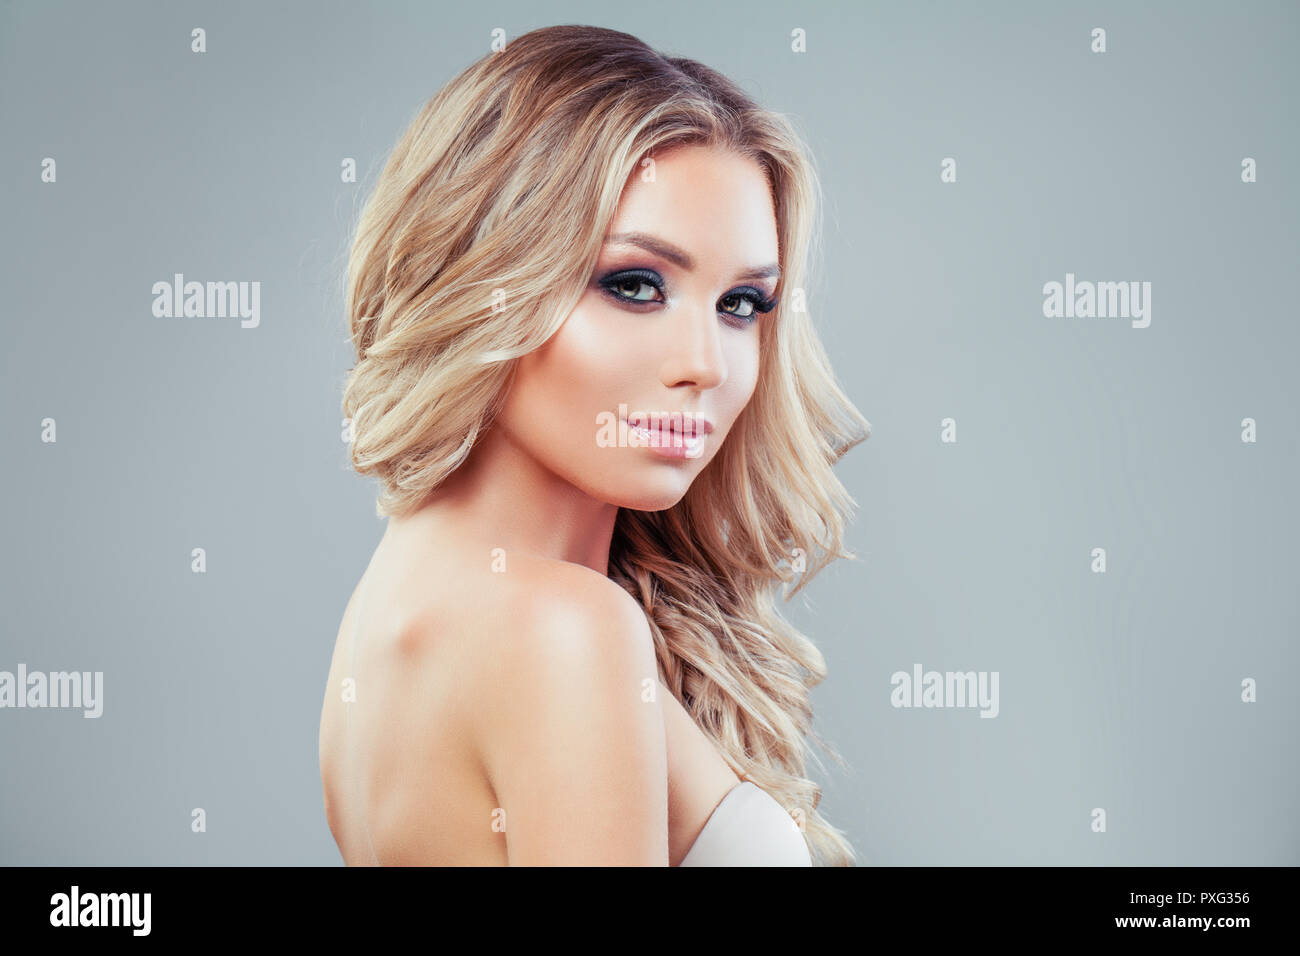 Beautiful Woman With Long Blonde Wavy Hair And Makeup On Banner Background Stock Photo Alamy